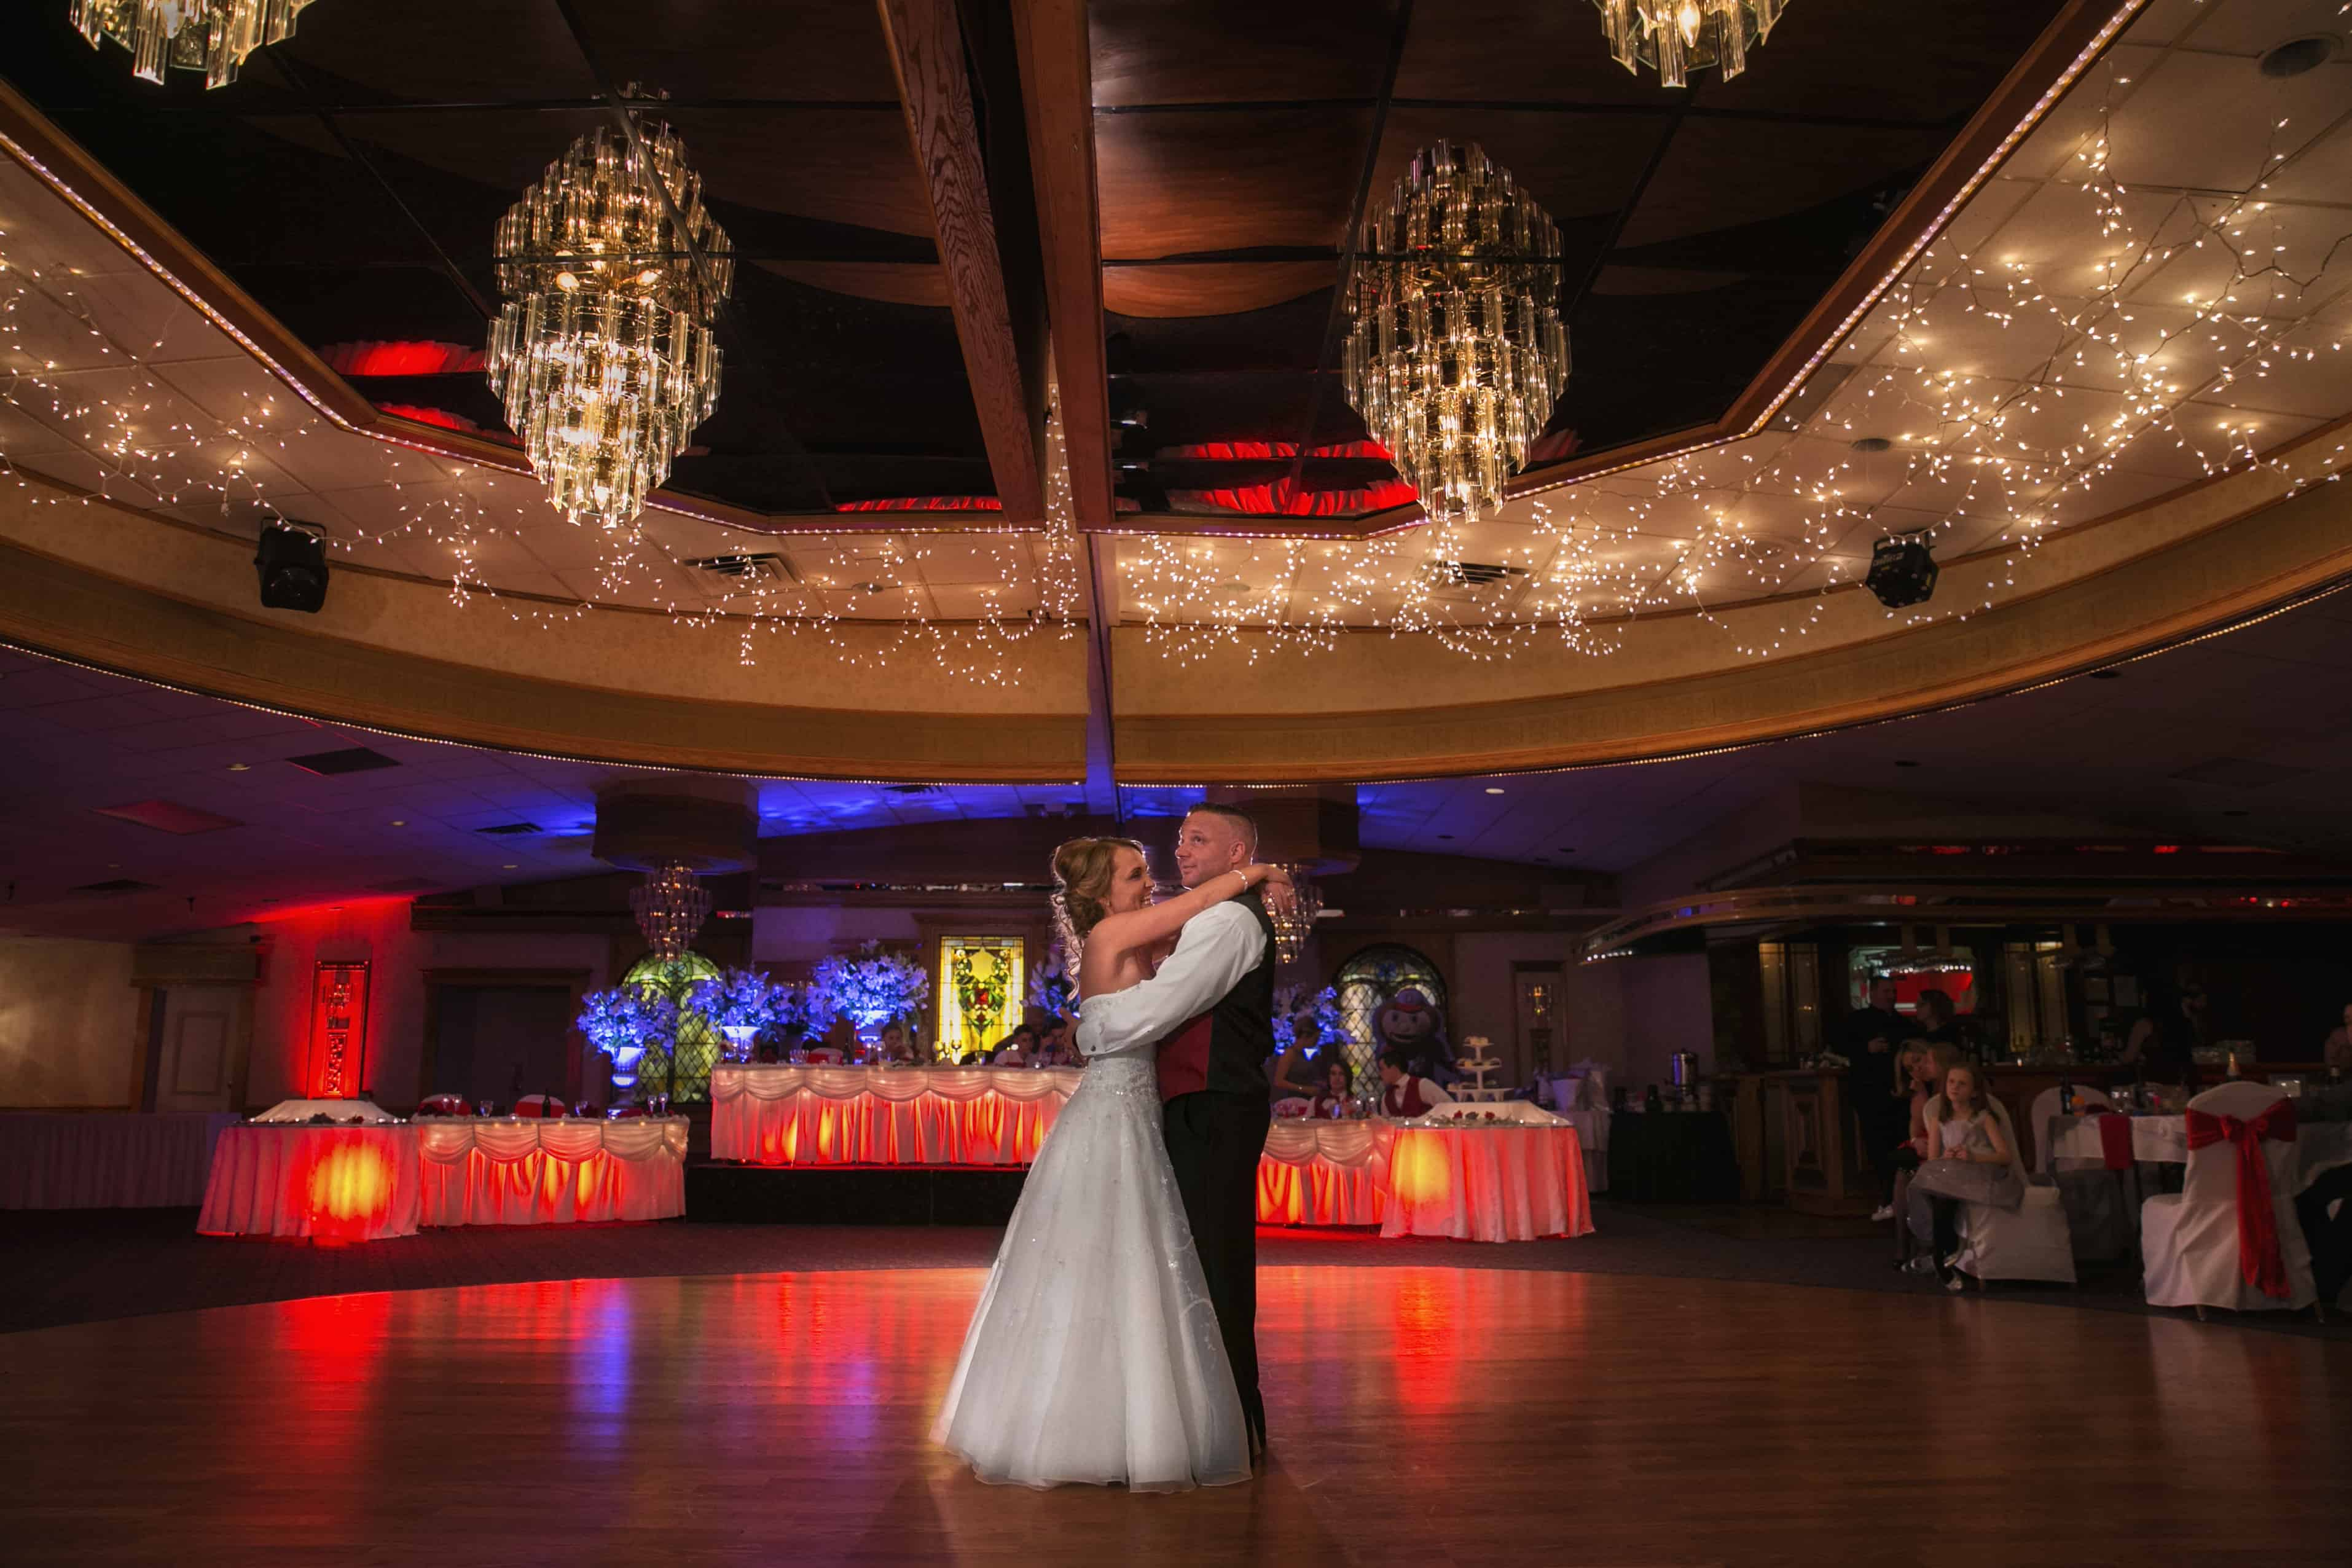 first dance at wedding reception at guy's party center